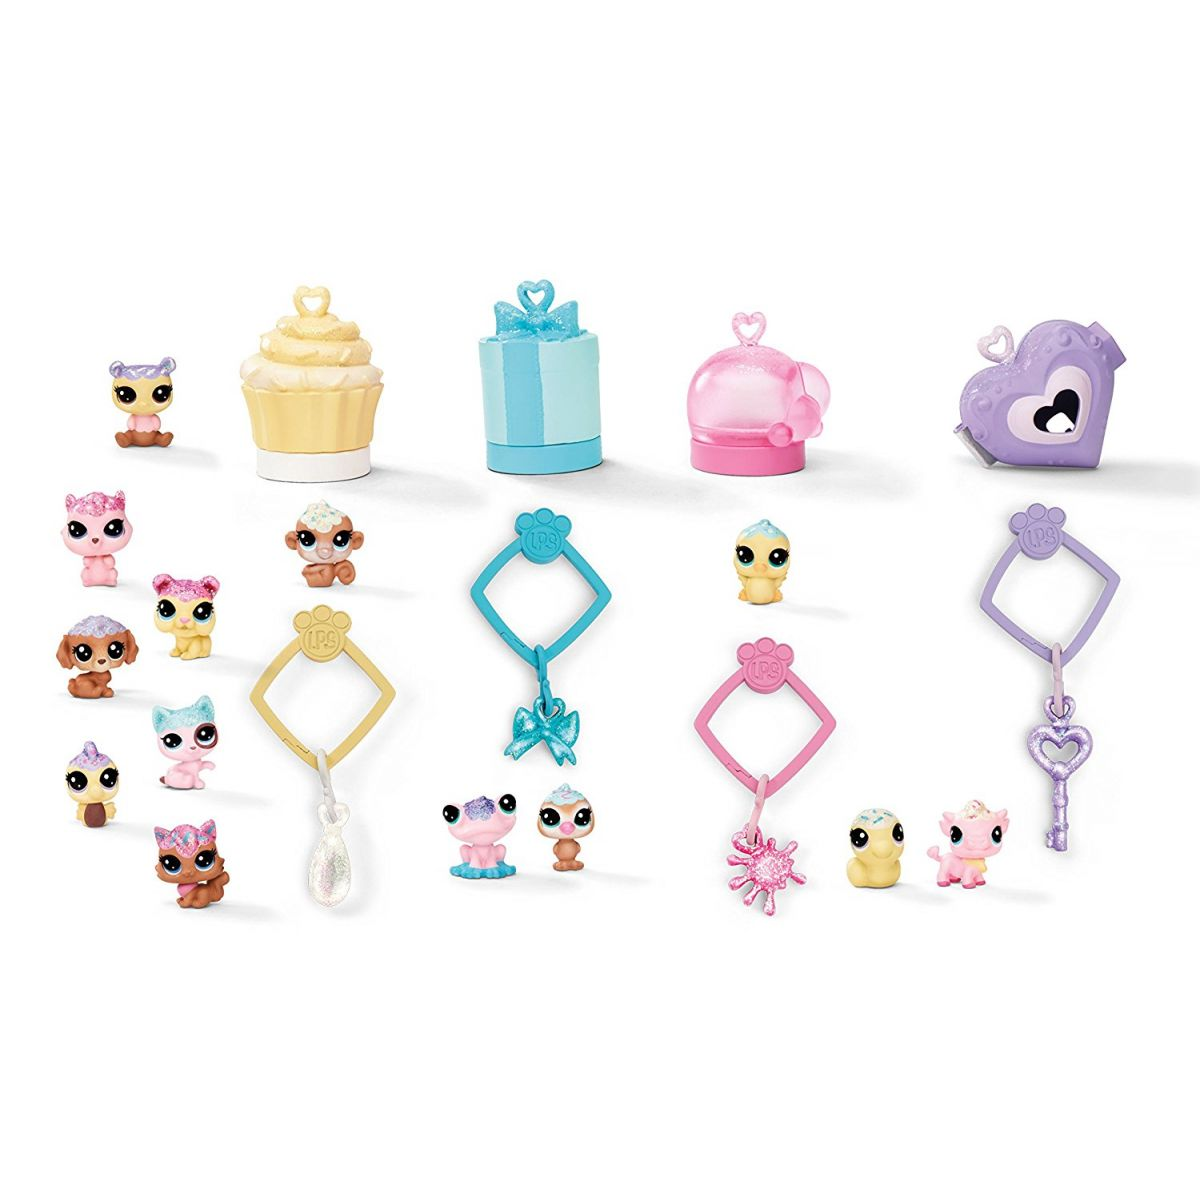 Hasbro Littlest Pet Shop Frosting Frenzy 13ks mini zvířátek